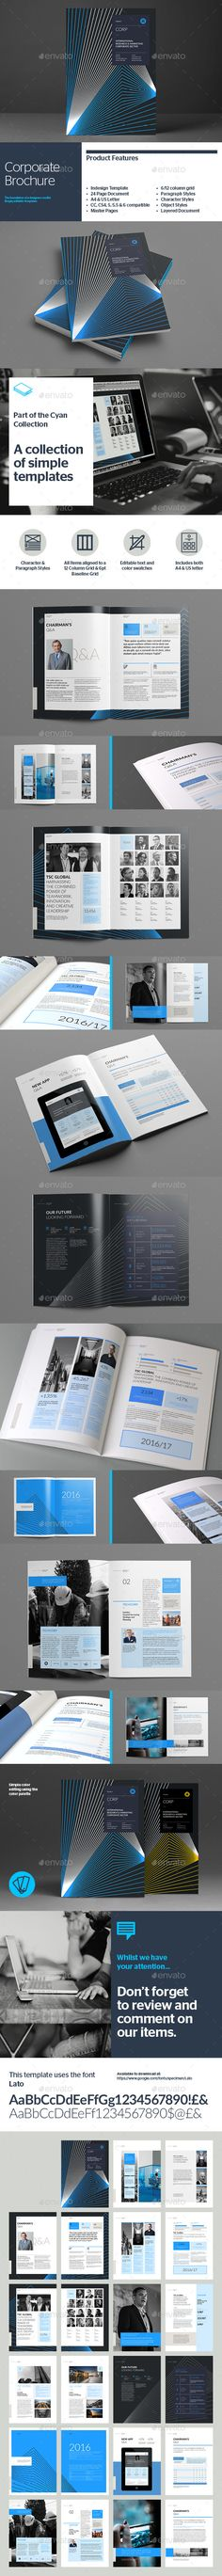 Email Marketing Brochure Template Fonts, Safety and Marketing flyers